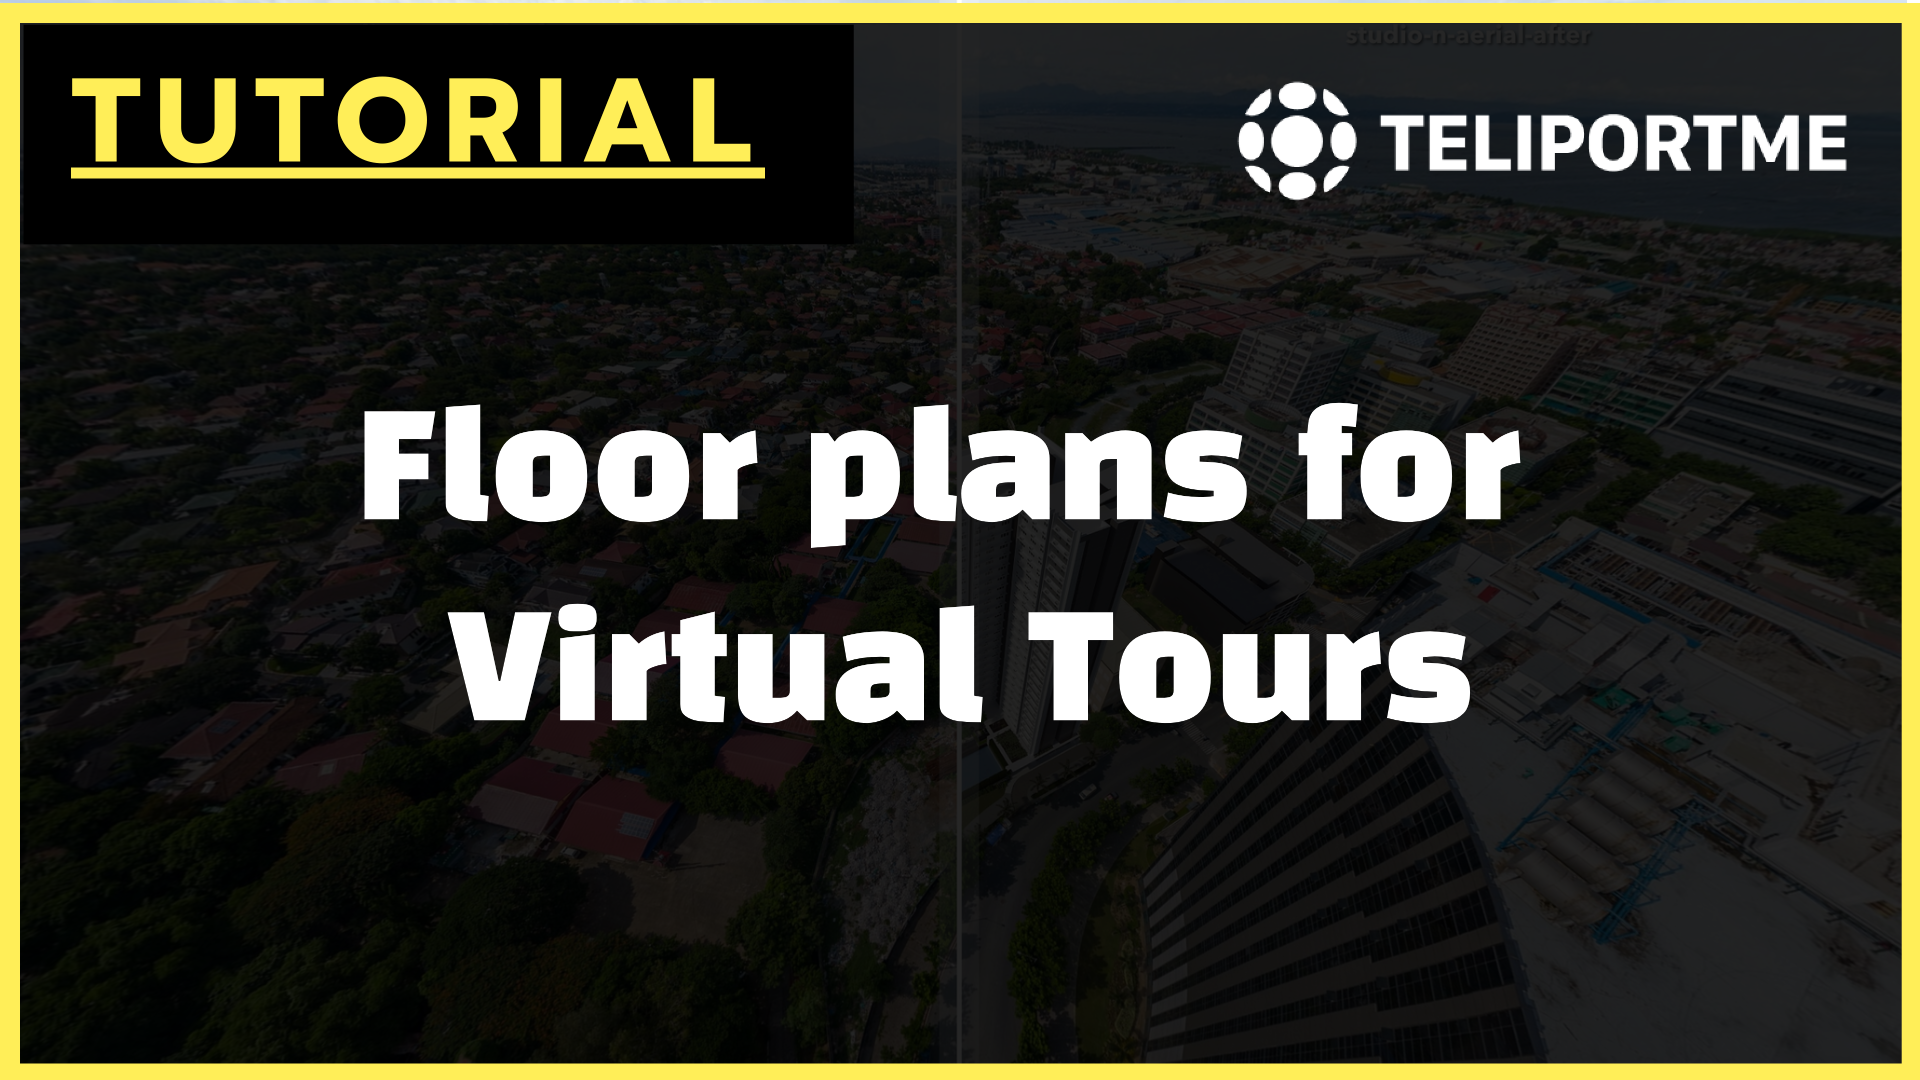 Adding Floor plans to Virtual Tours